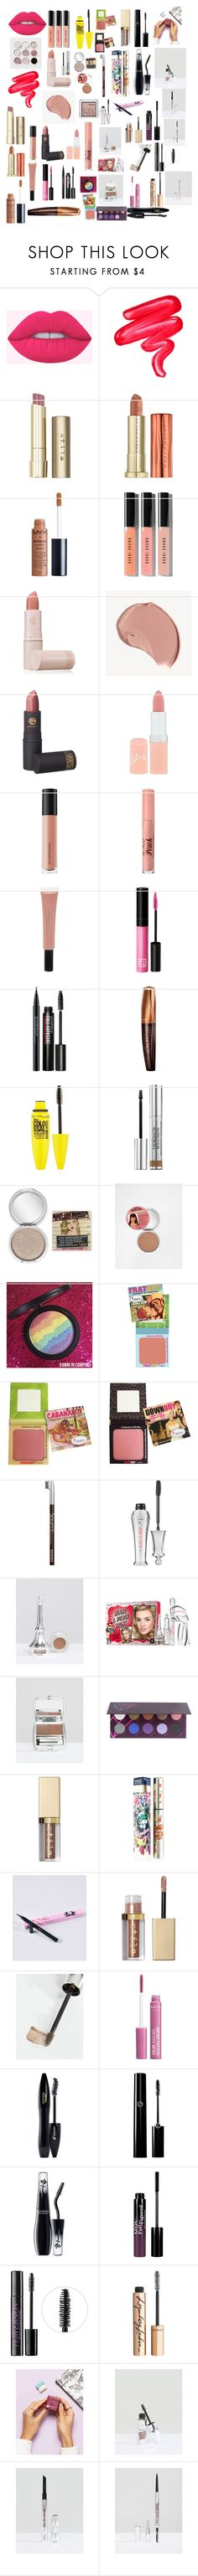 """Makeup"" by mikahelaine ❤ liked on Polyvore featuring beauty, Lime Crime, Stila, Urban Decay, Charlotte Russe, Bobbi Brown Cosmetics, Lipstick Queen, Burberry, Rimmel and Bare Escentuals"